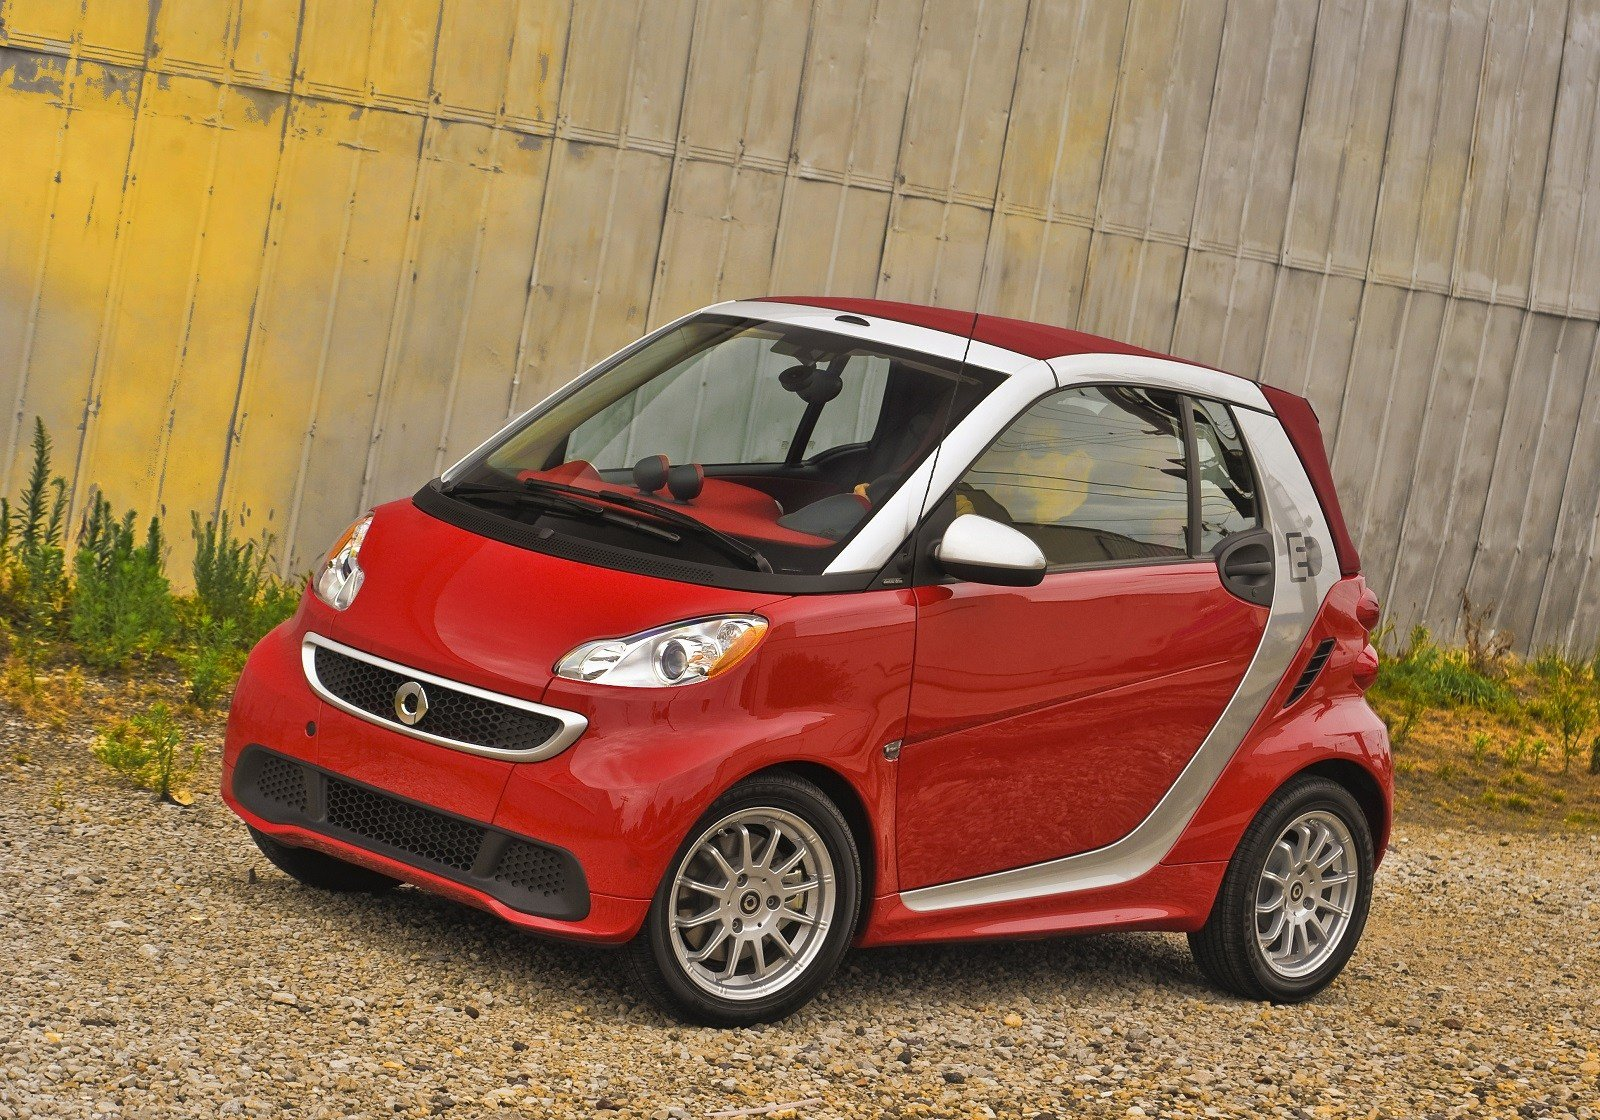 Latest Tiny Smart Cars Lose 5 Billion For Mercedes Benz Report Free Download